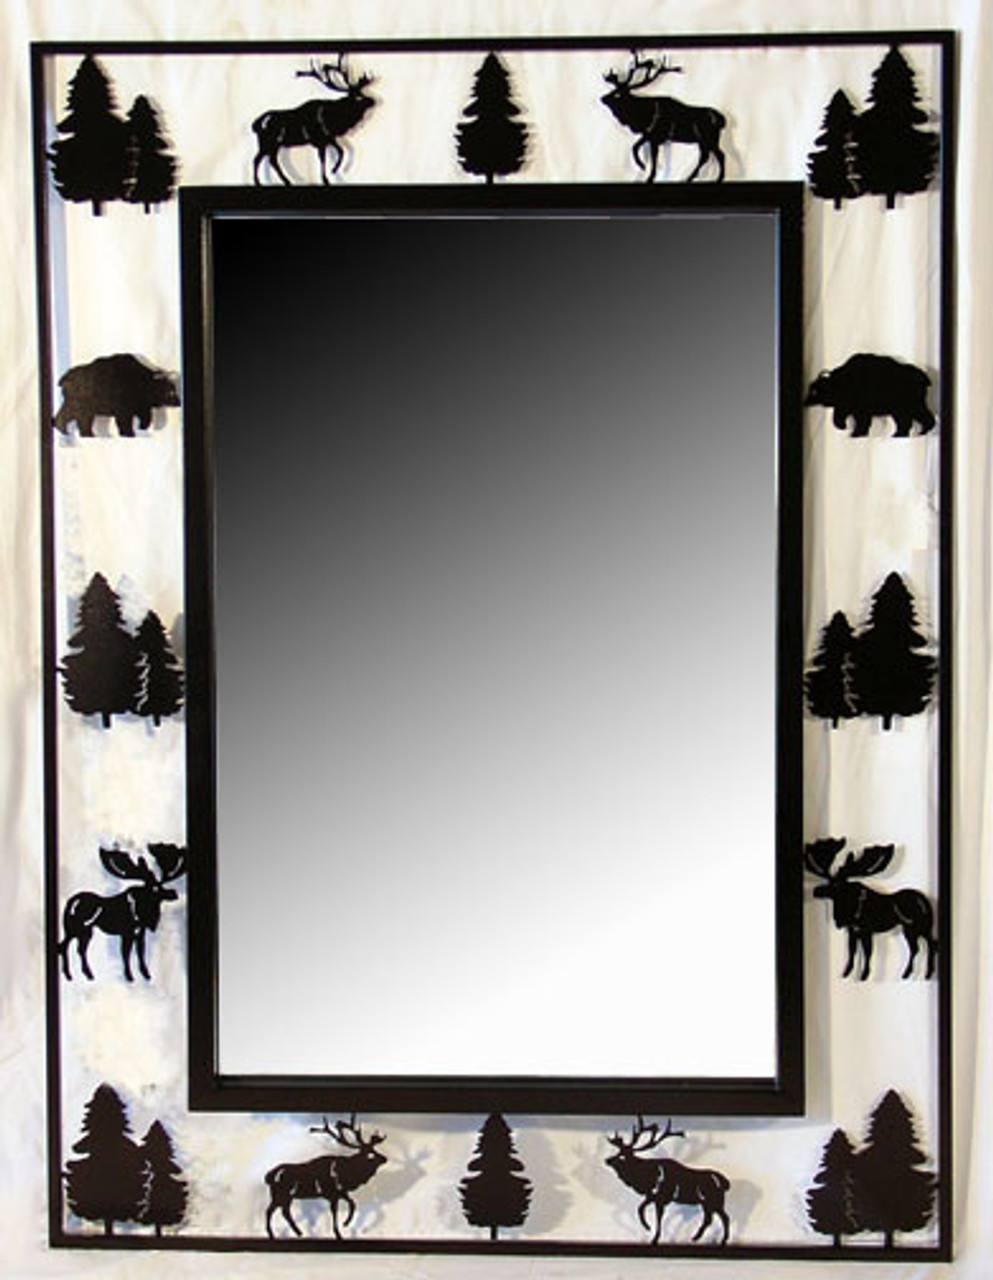 Bruin Bear Large Decorative Mirror by Larry Beckstein